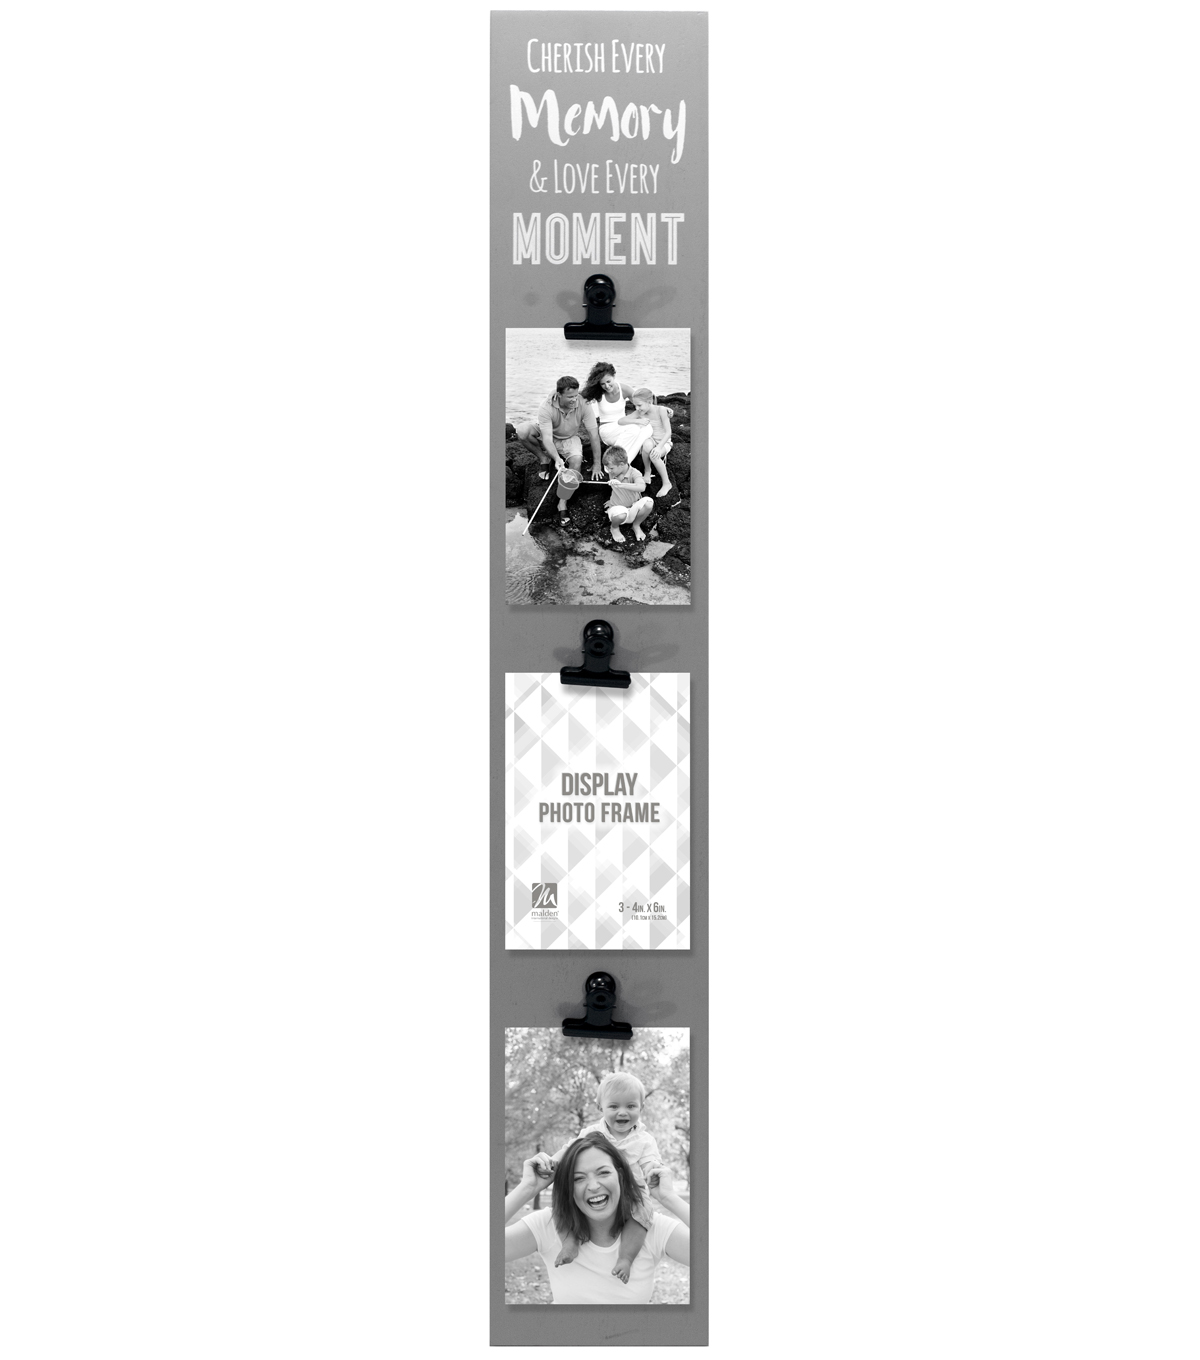 Malden Clip Strip 5.5X29 Three 4X6 Openings-Cherish Every Moment & Love Every Moment